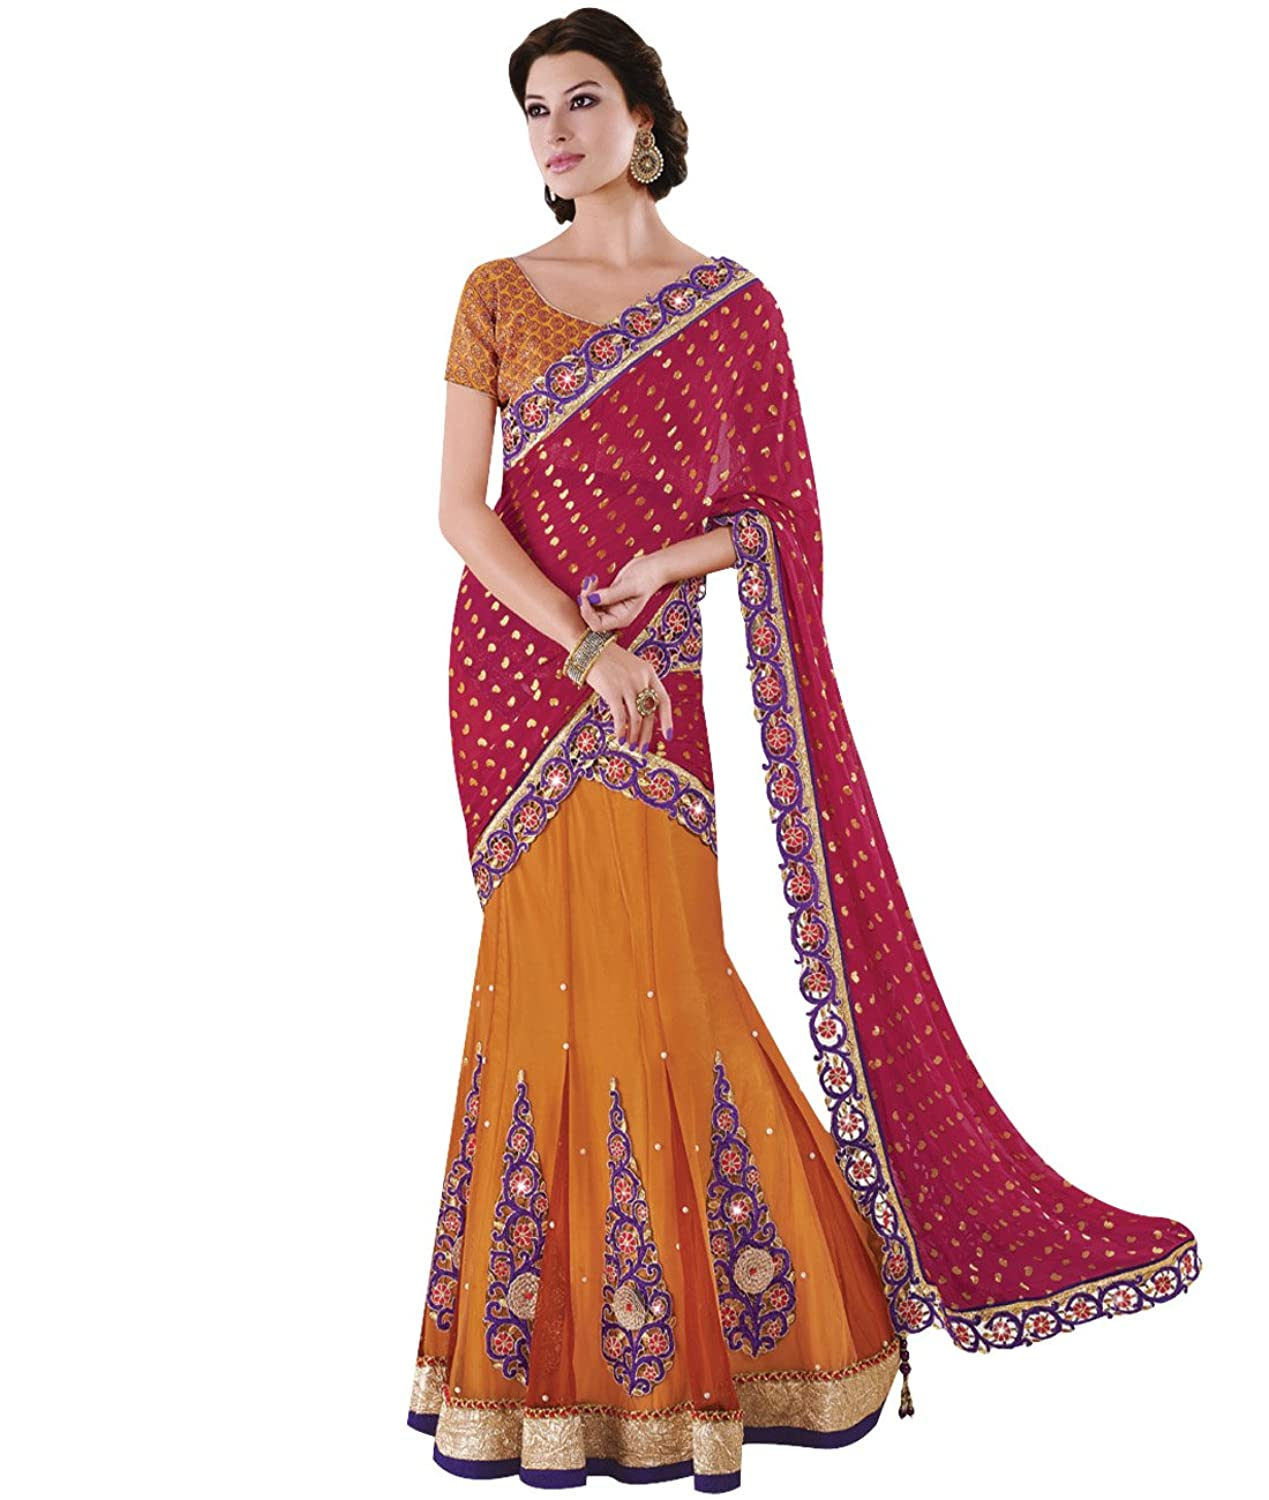 Indian Ethnic Bollywood Wedding Chiffon Red & Orange Designer Lehenga Saree